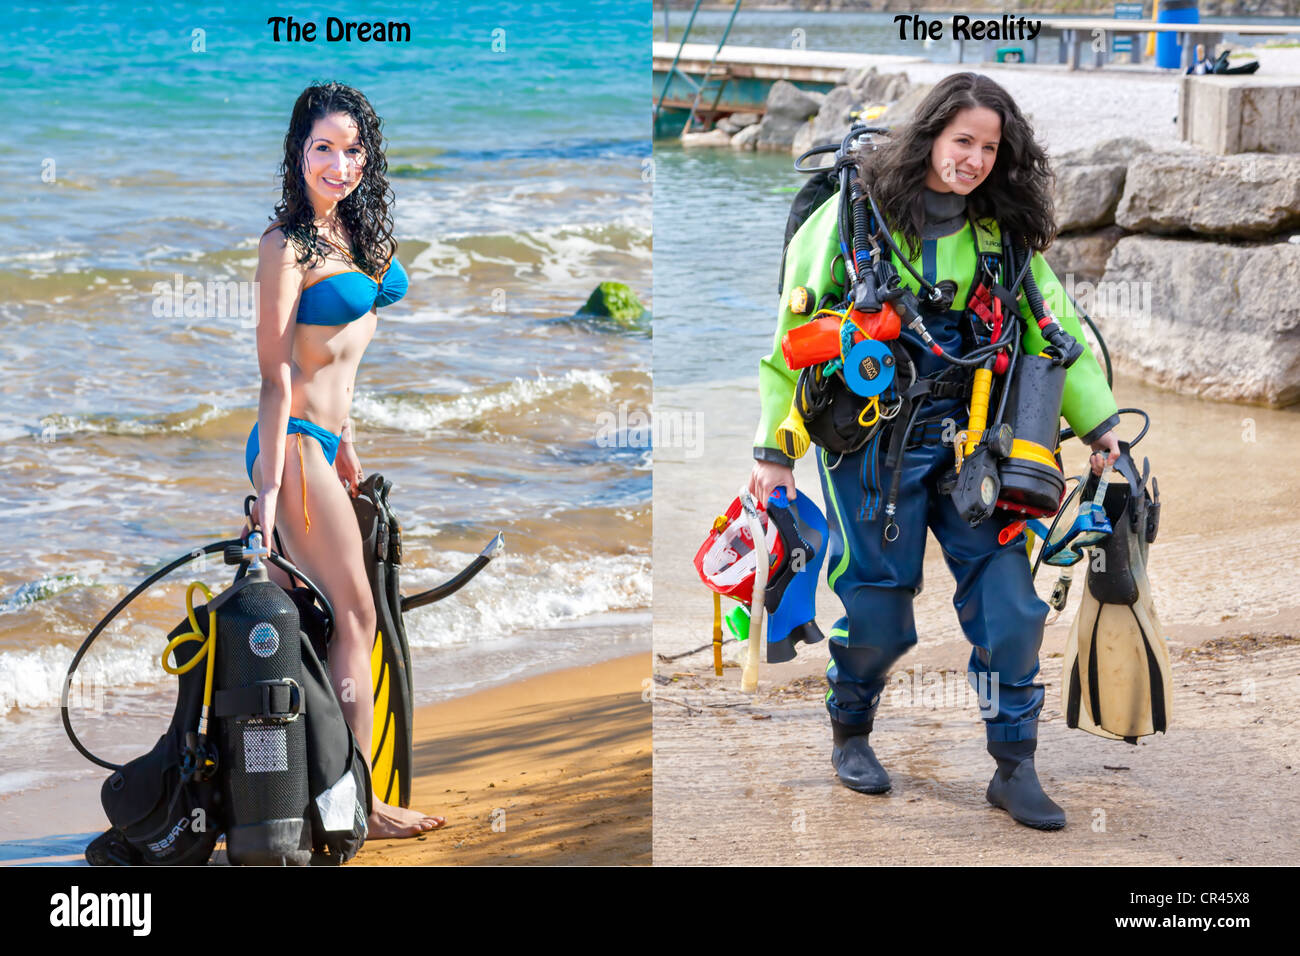 A beautiful girl shows the contrast between The Dream and The Reality of scuba diving expectations in a humorous - Stock Image